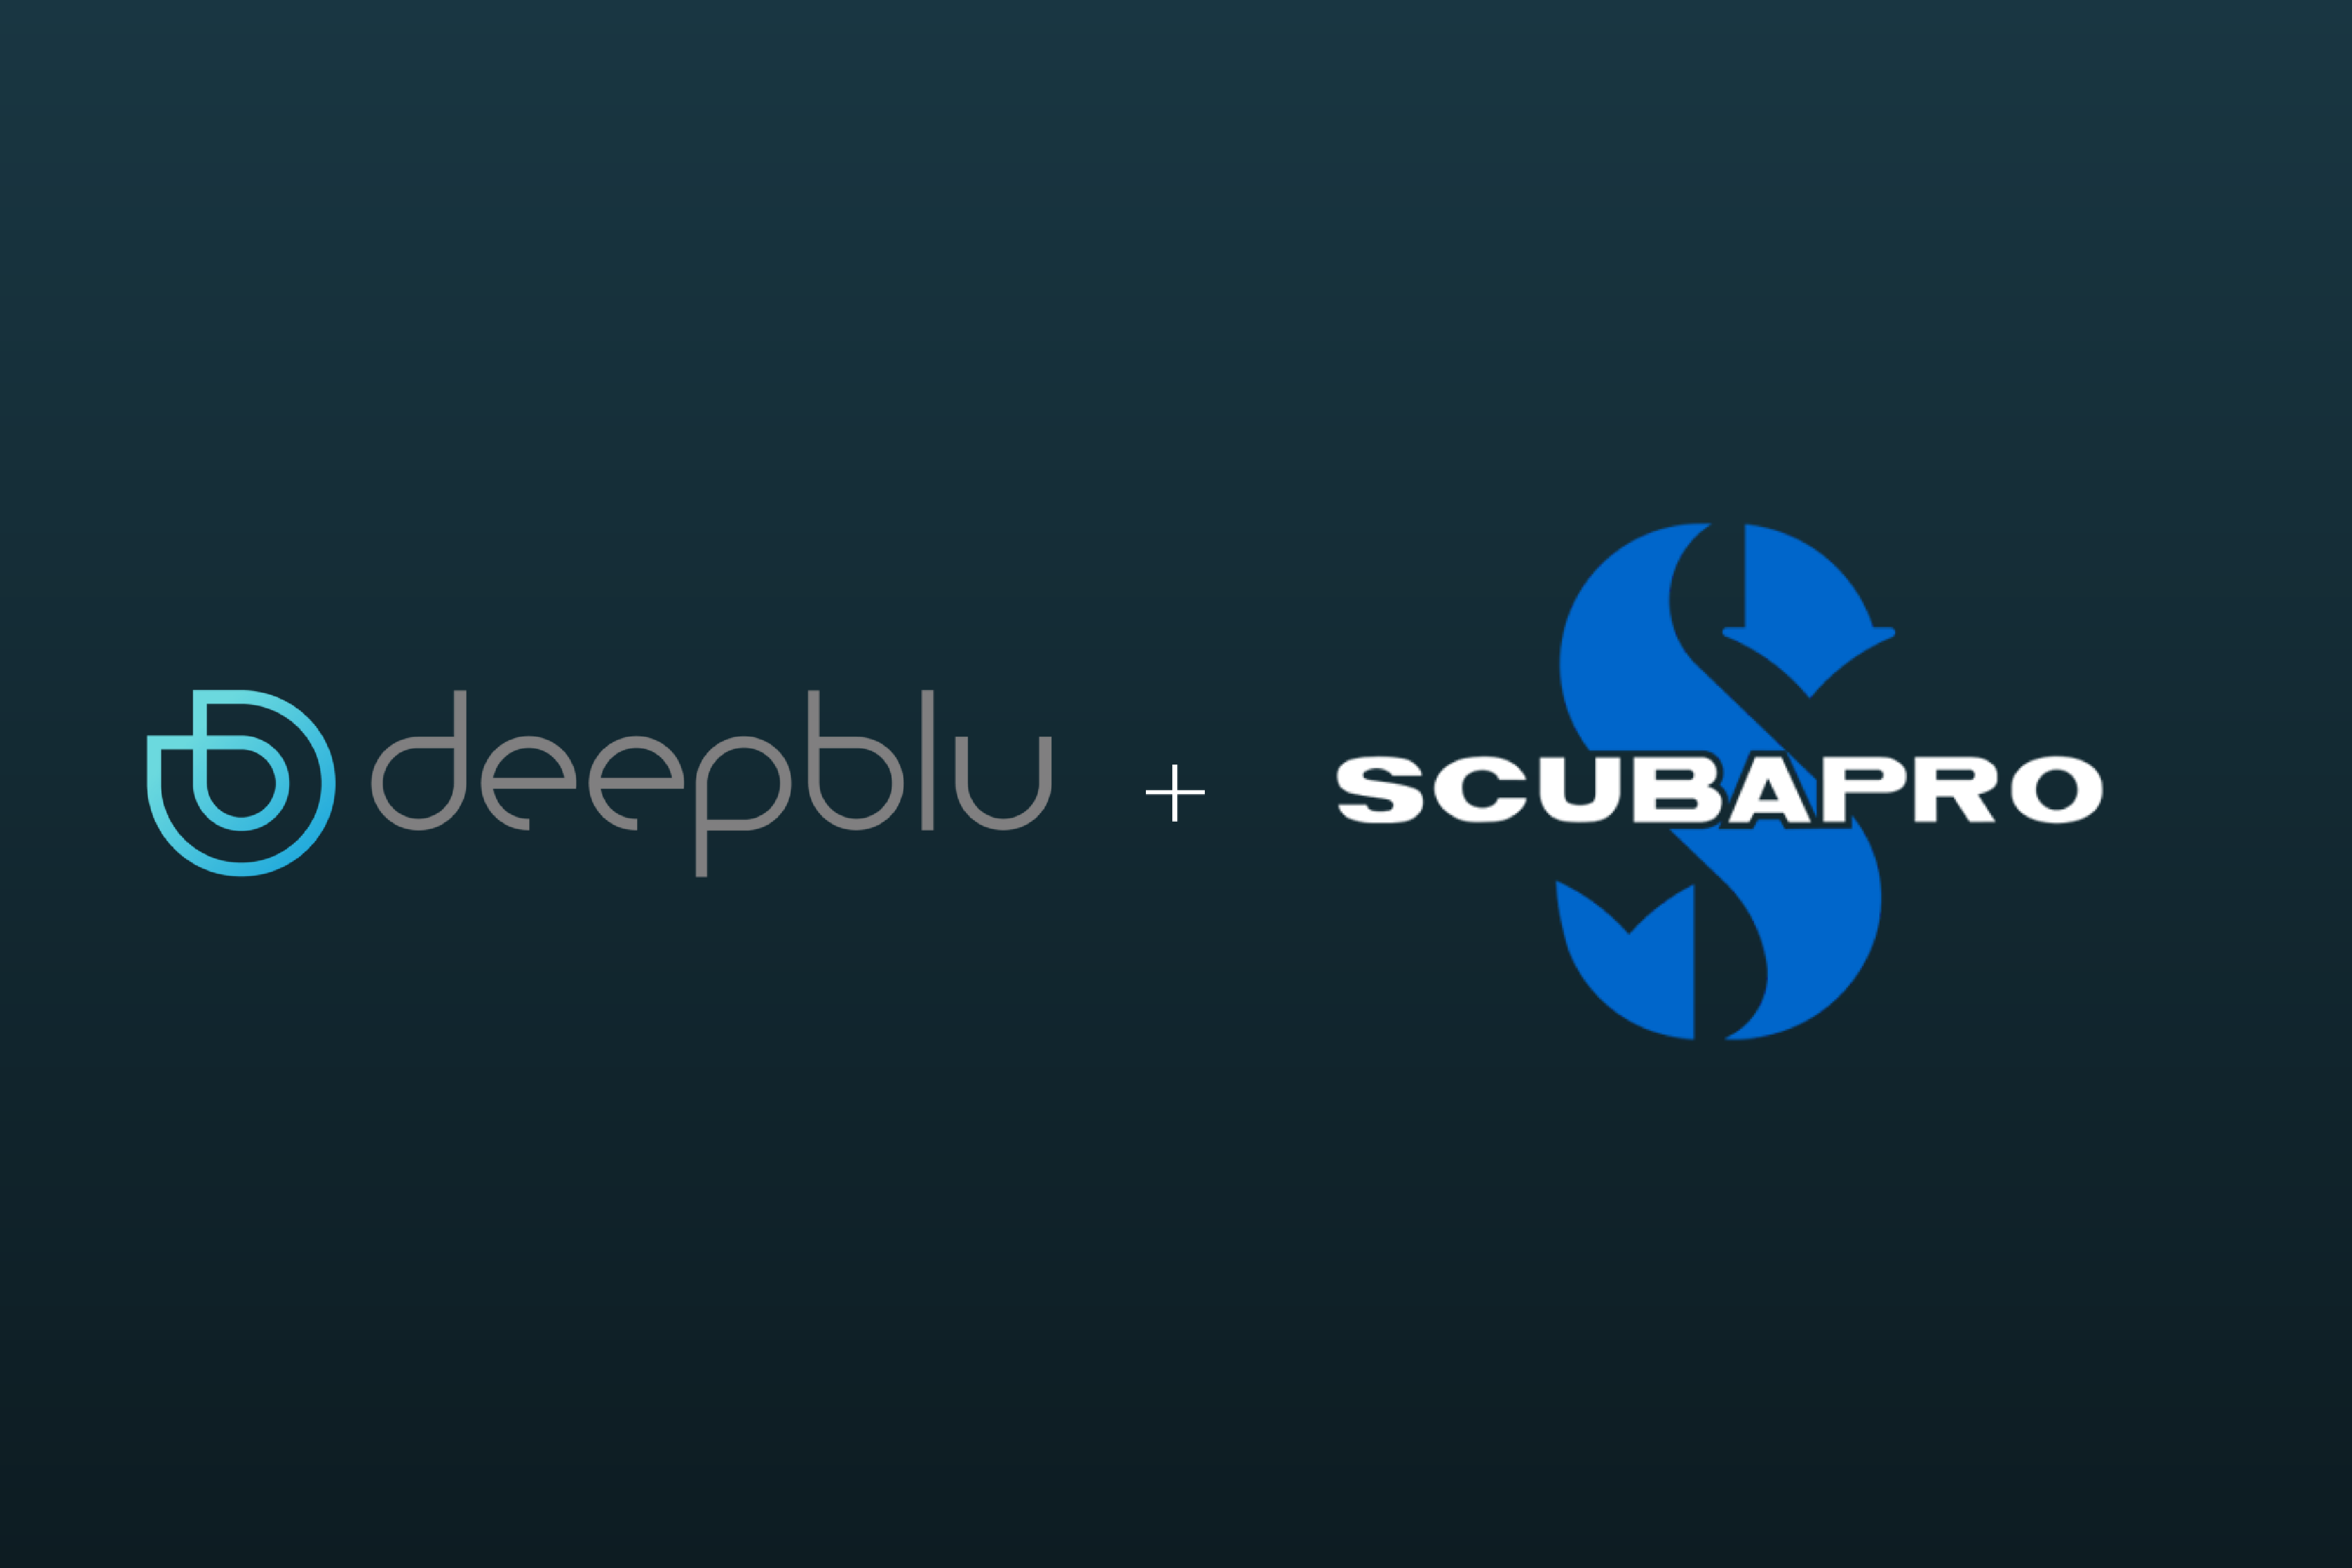 SCUBAPRO First Diving Manufacturer To Support Deepblu Connect